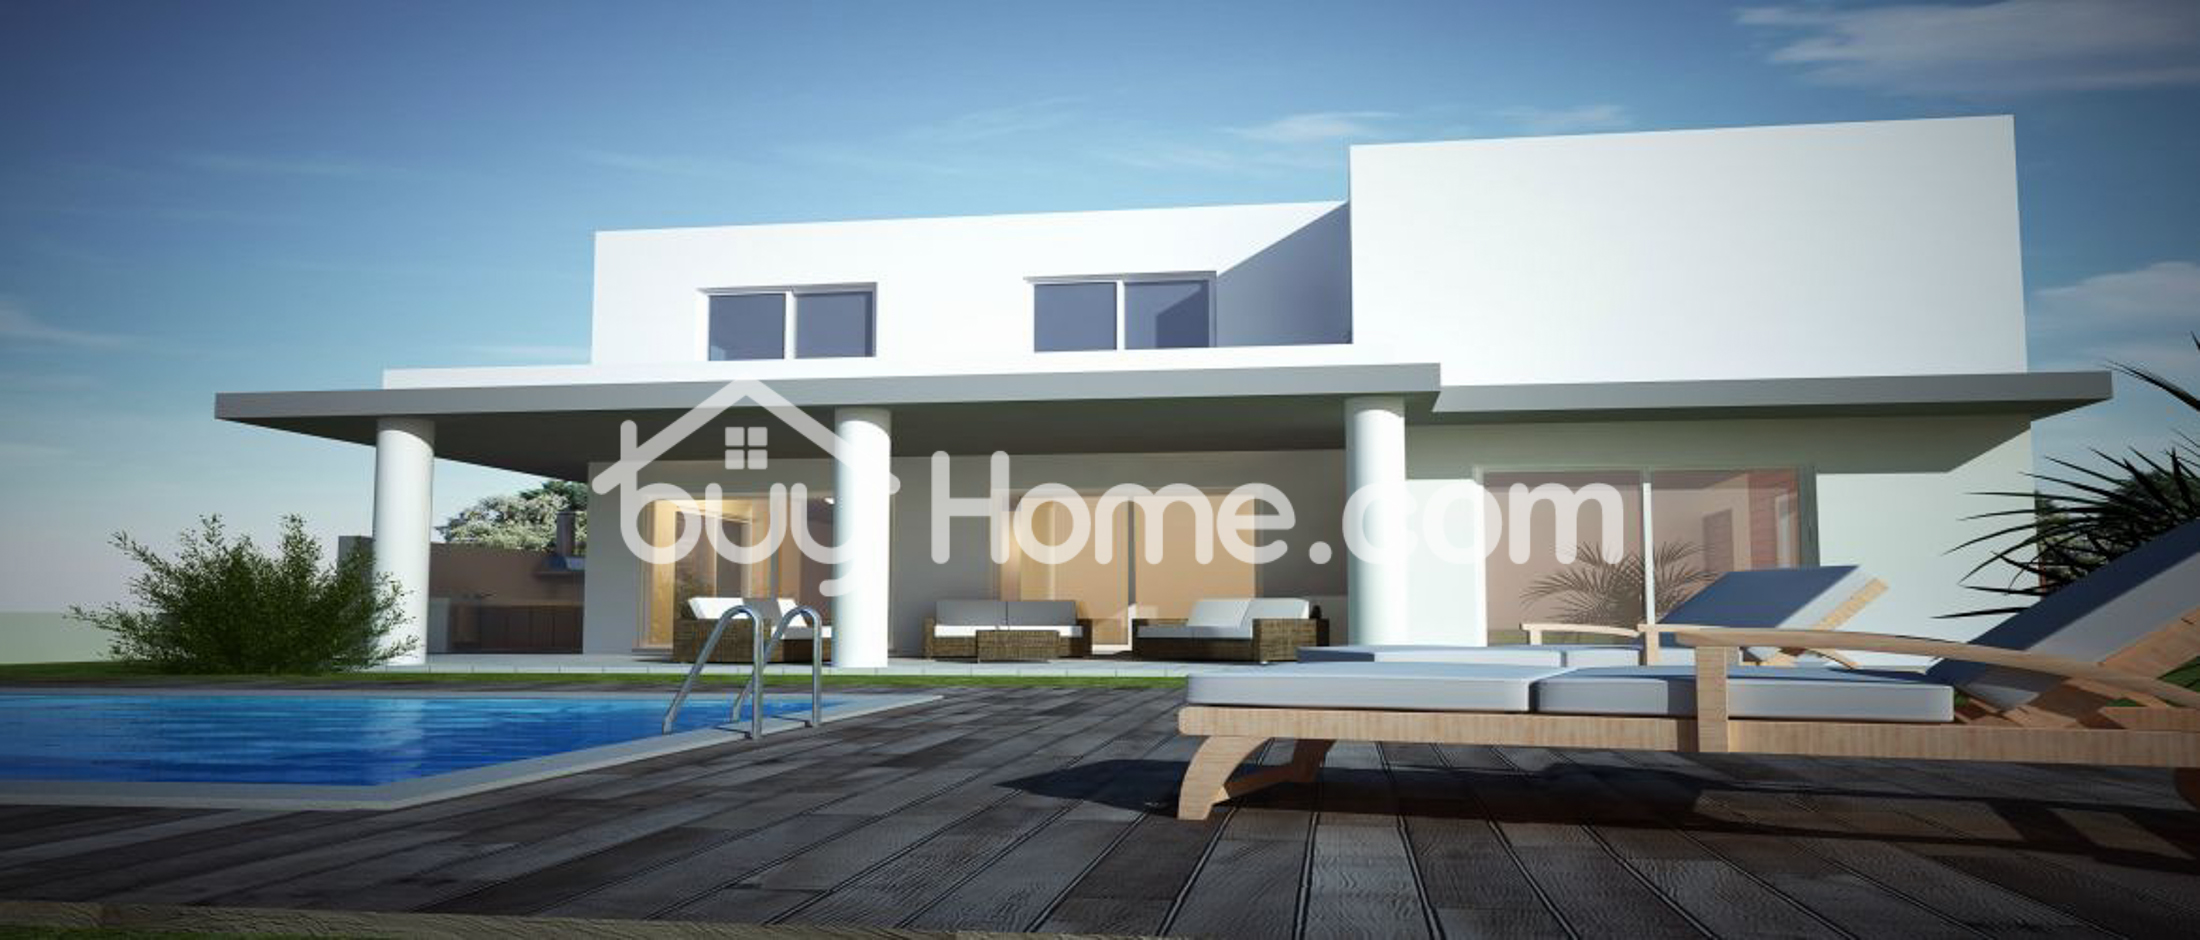 5 Bedroom Houses | BuyHome